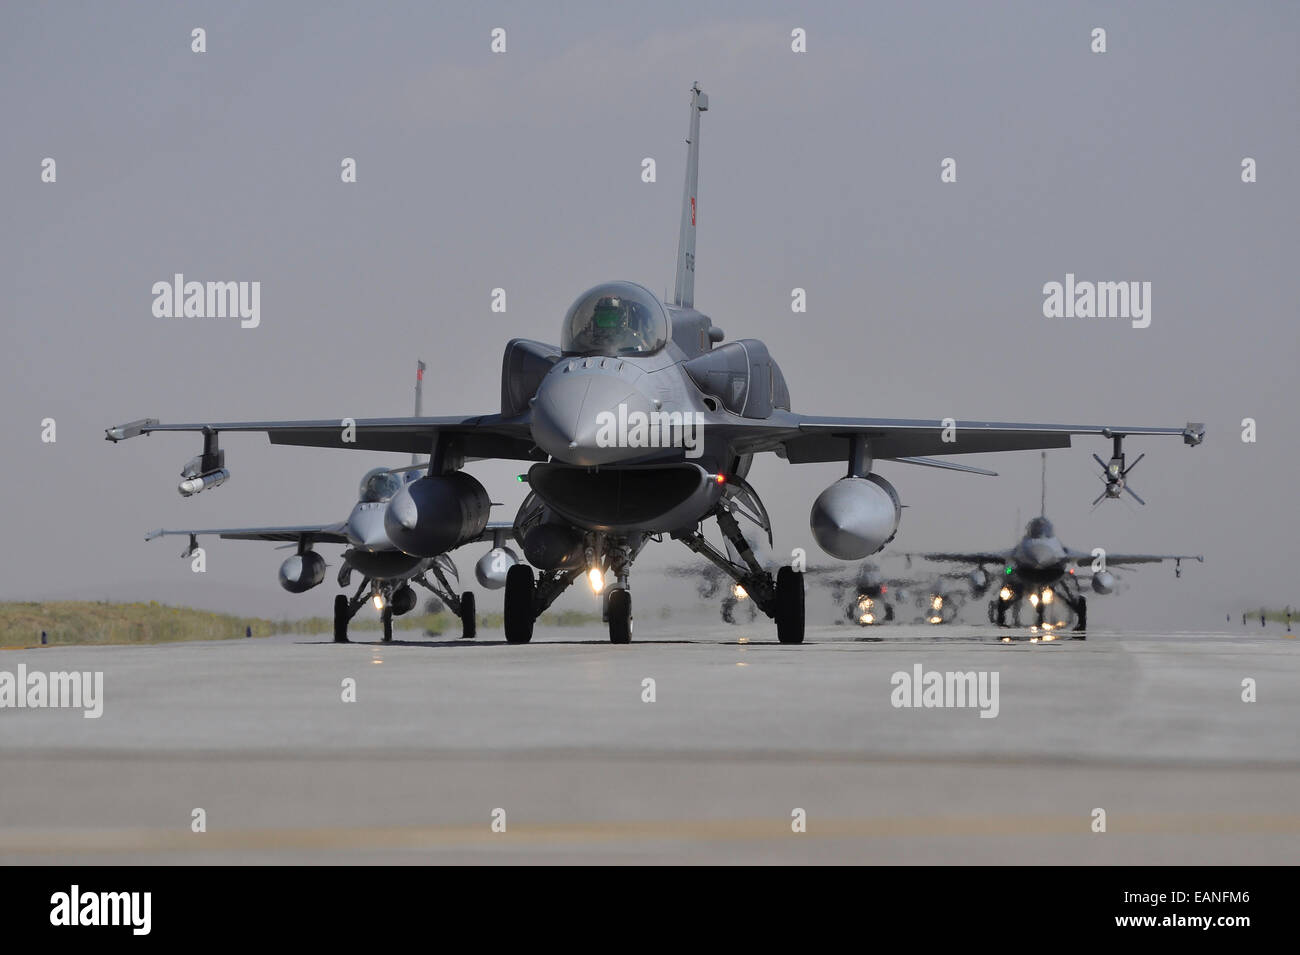 Turkish Air Force F-16C/D Block 52+ aircraft taxiing on the runway at Konya Air Base, Turkey, during Exercise Anatolian - Stock Image